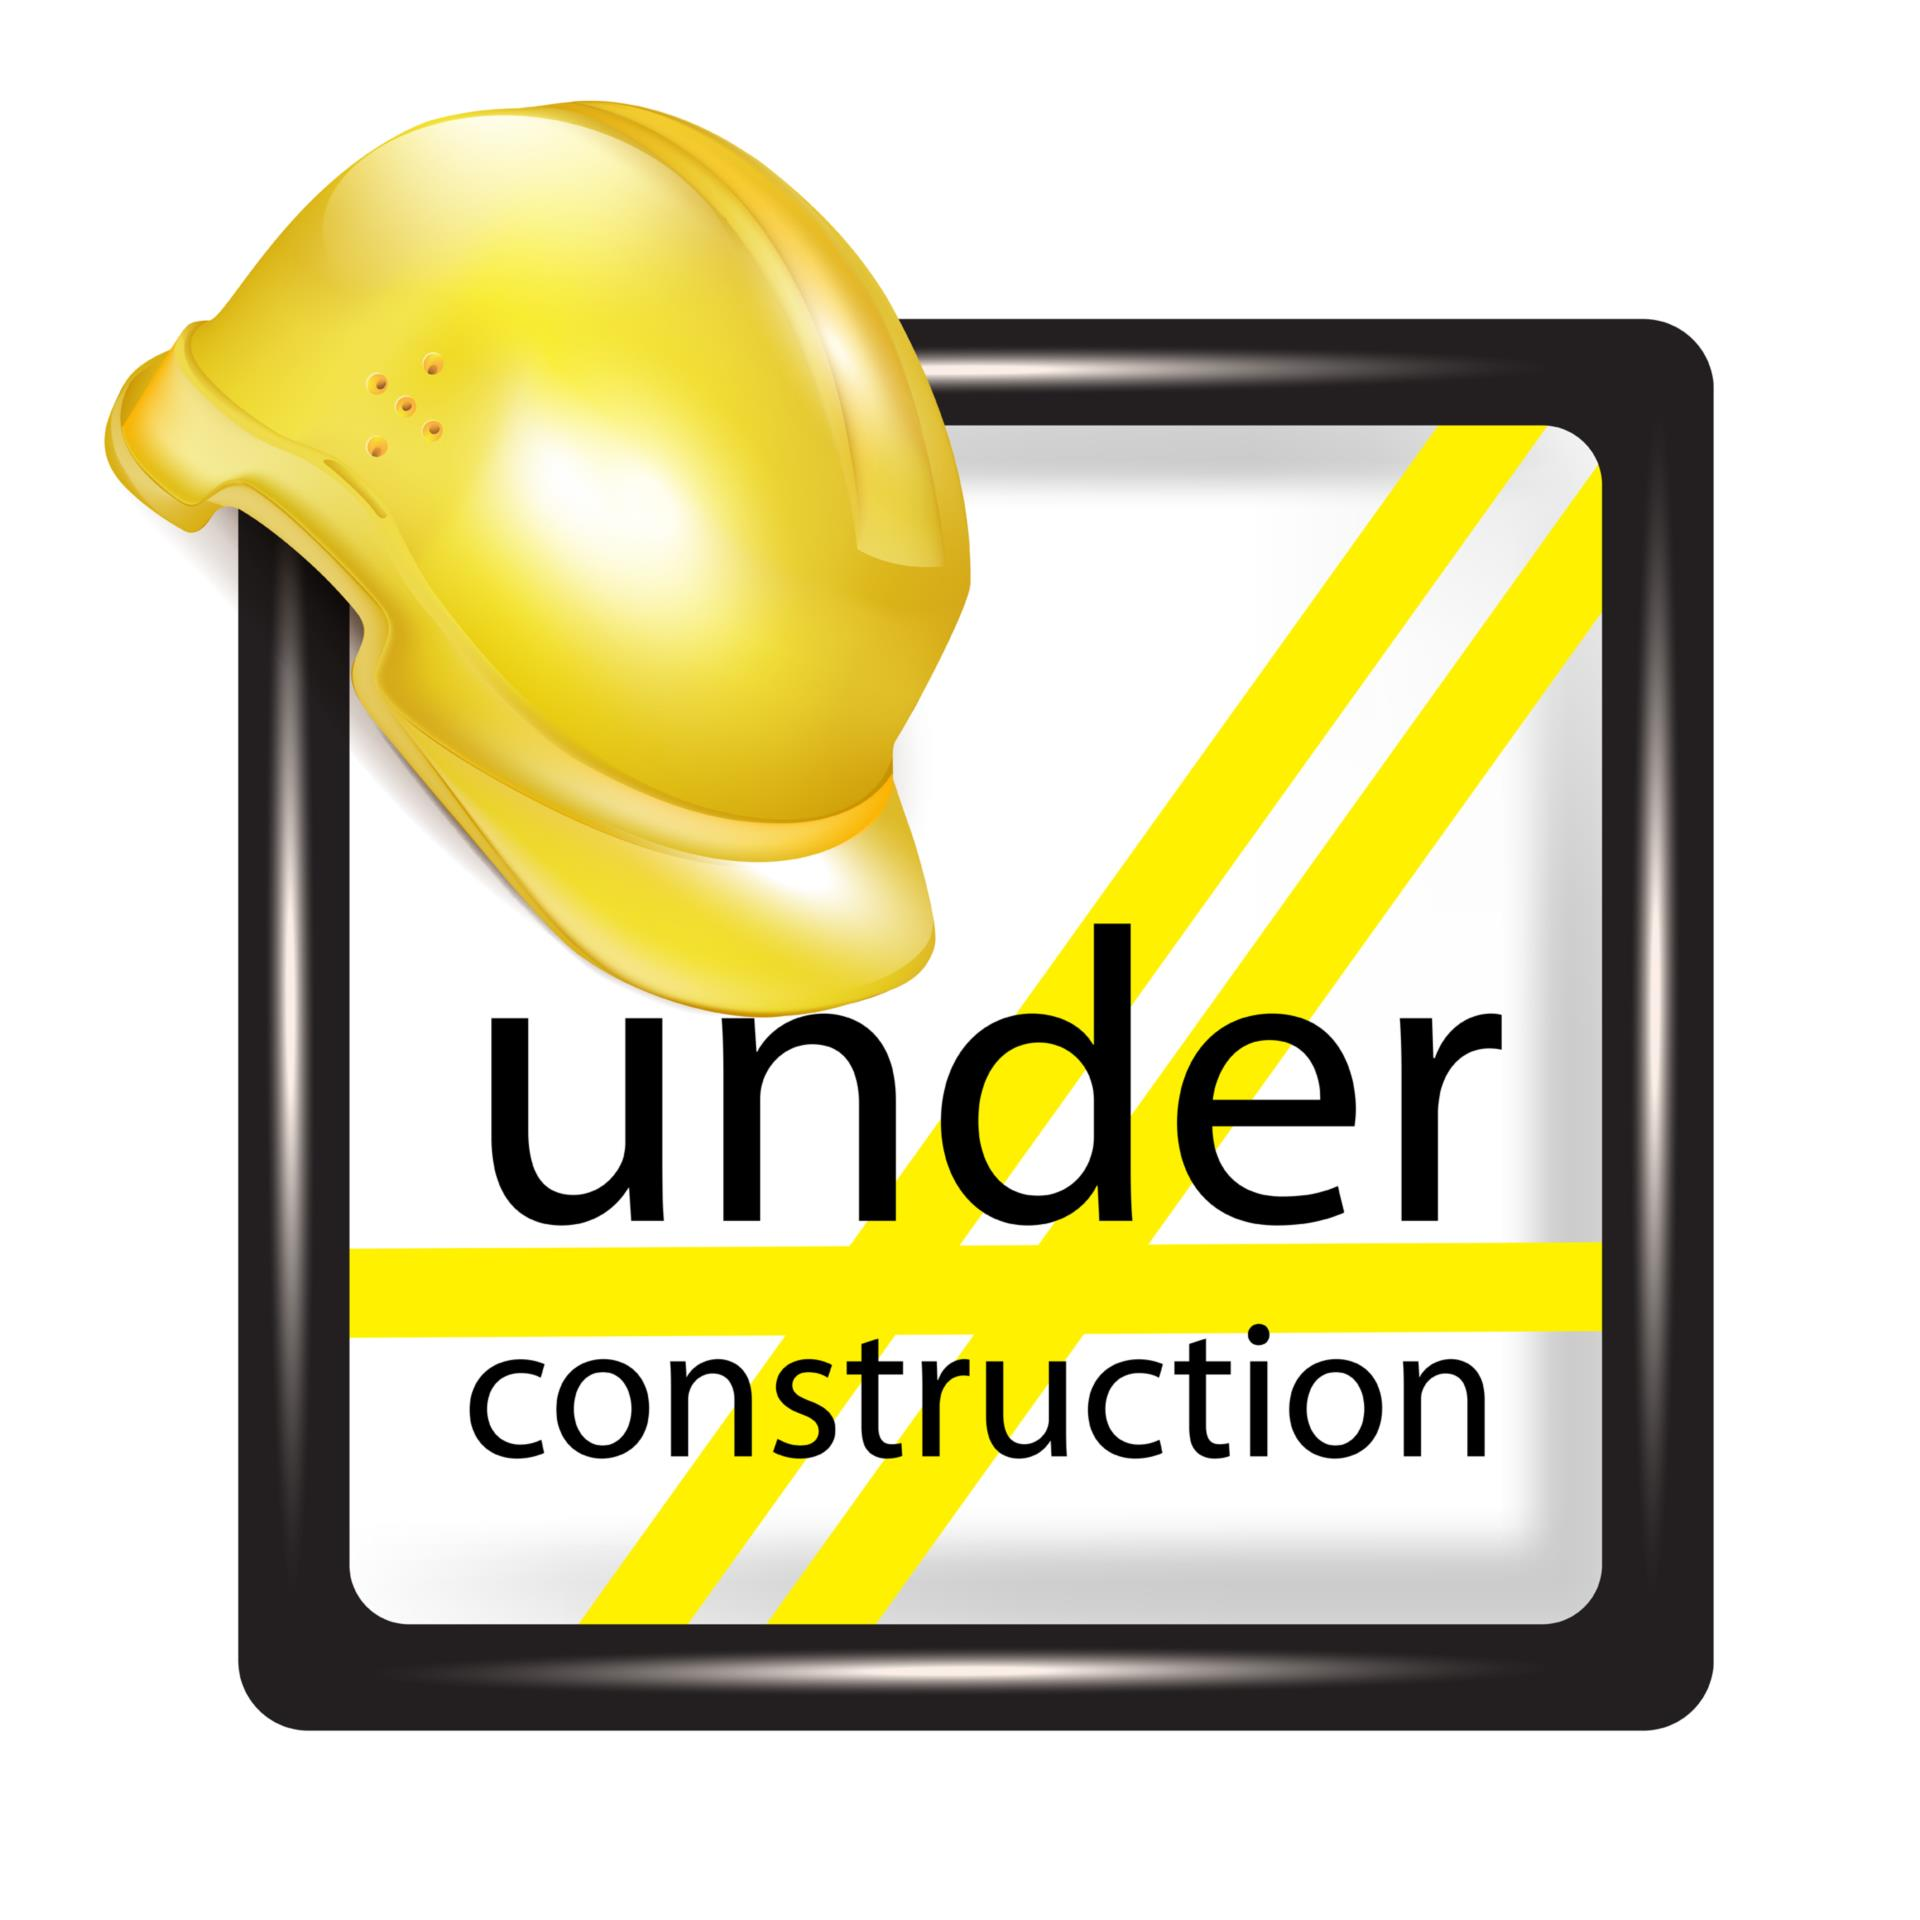 Hard hat with under construction sign